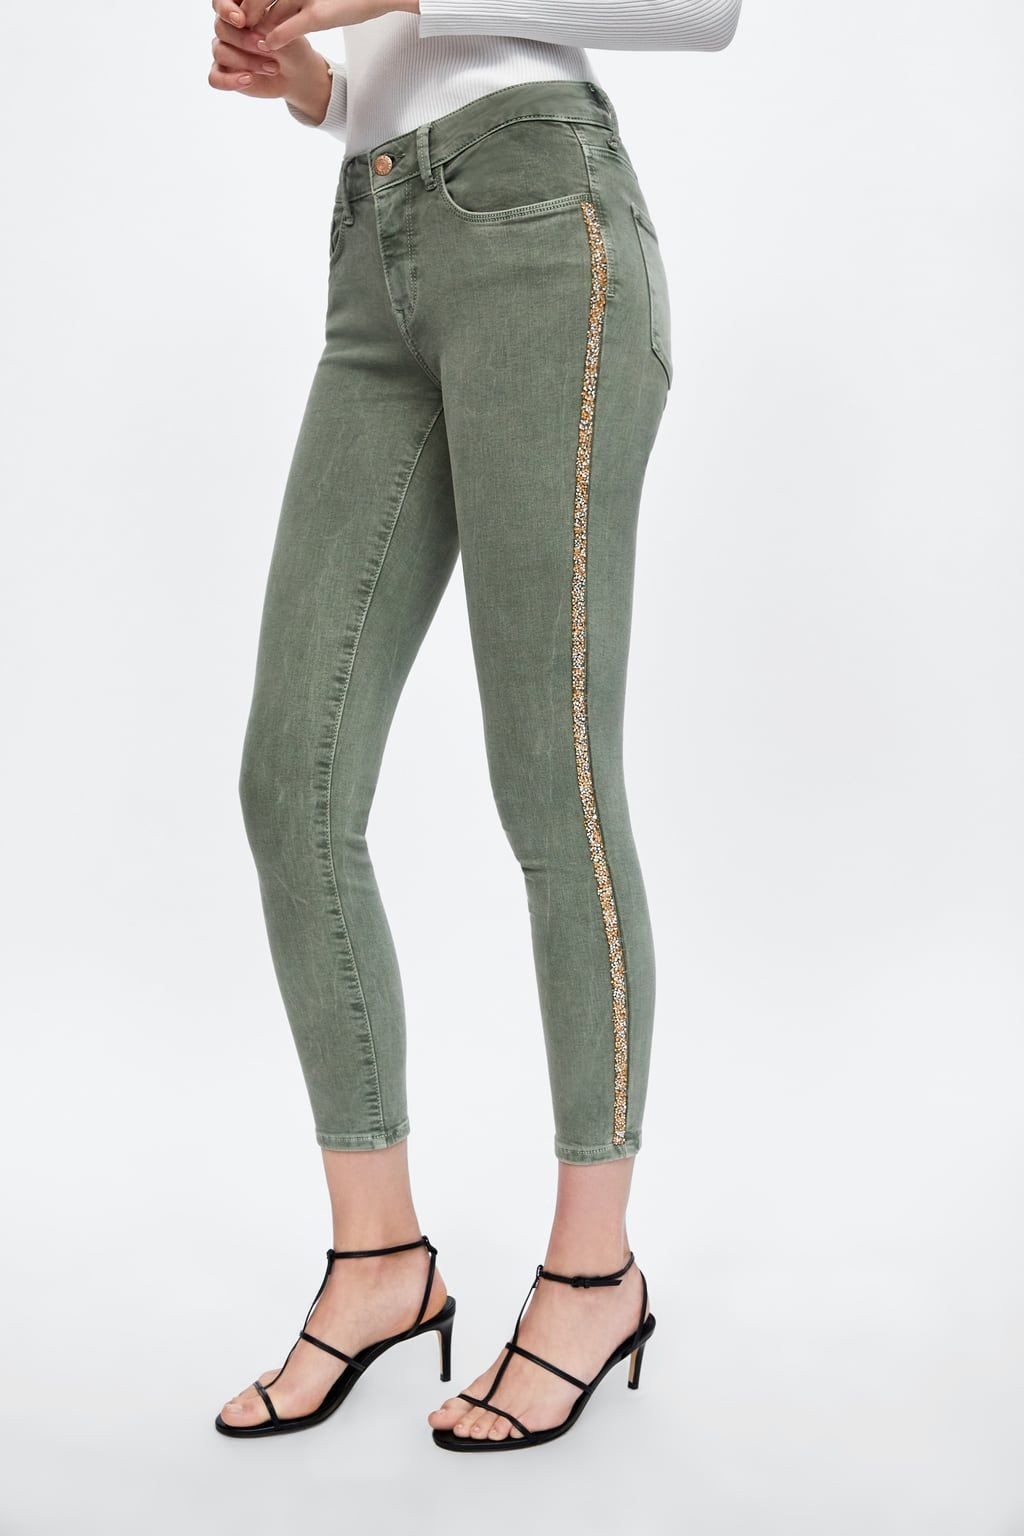 ba6c7b03 Z1975 jeans with shiny side stripes in 2019 | clothes | Striped ...